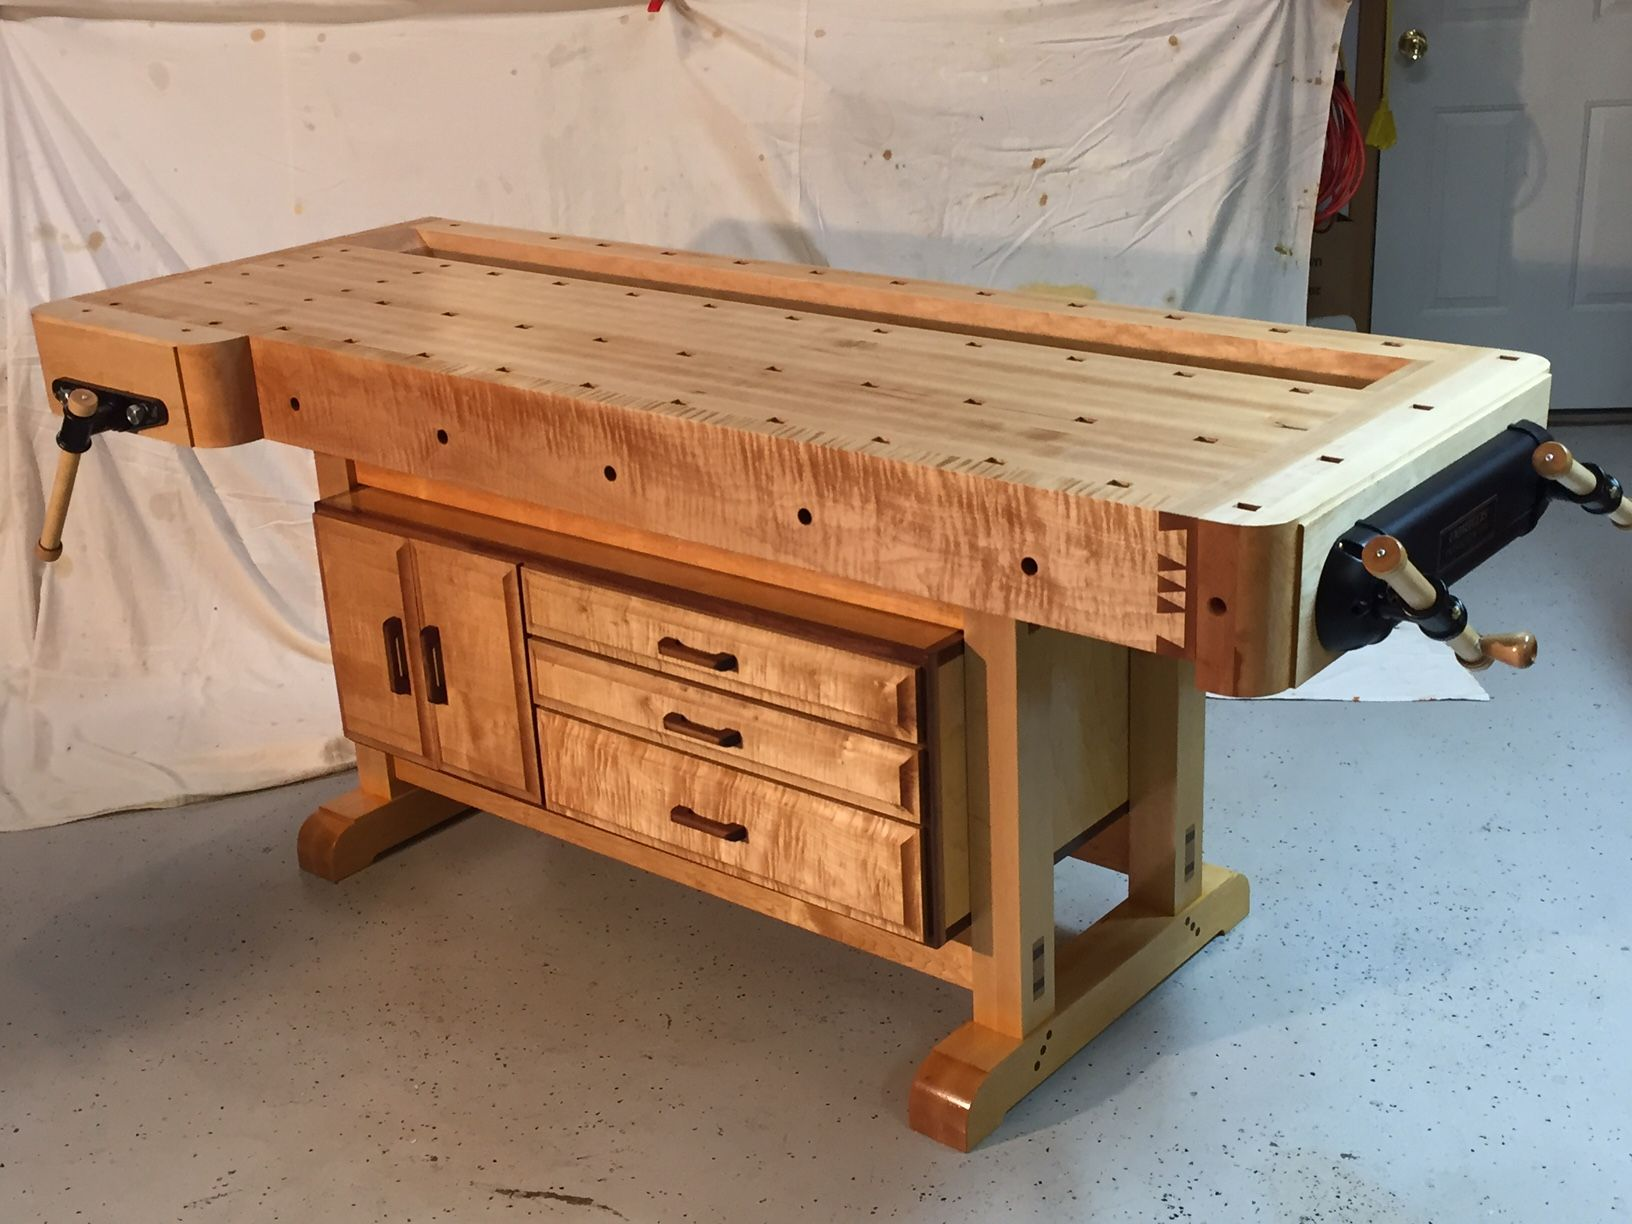 Pin By David Dalton On Craft Ideas In 2019 Woodworking